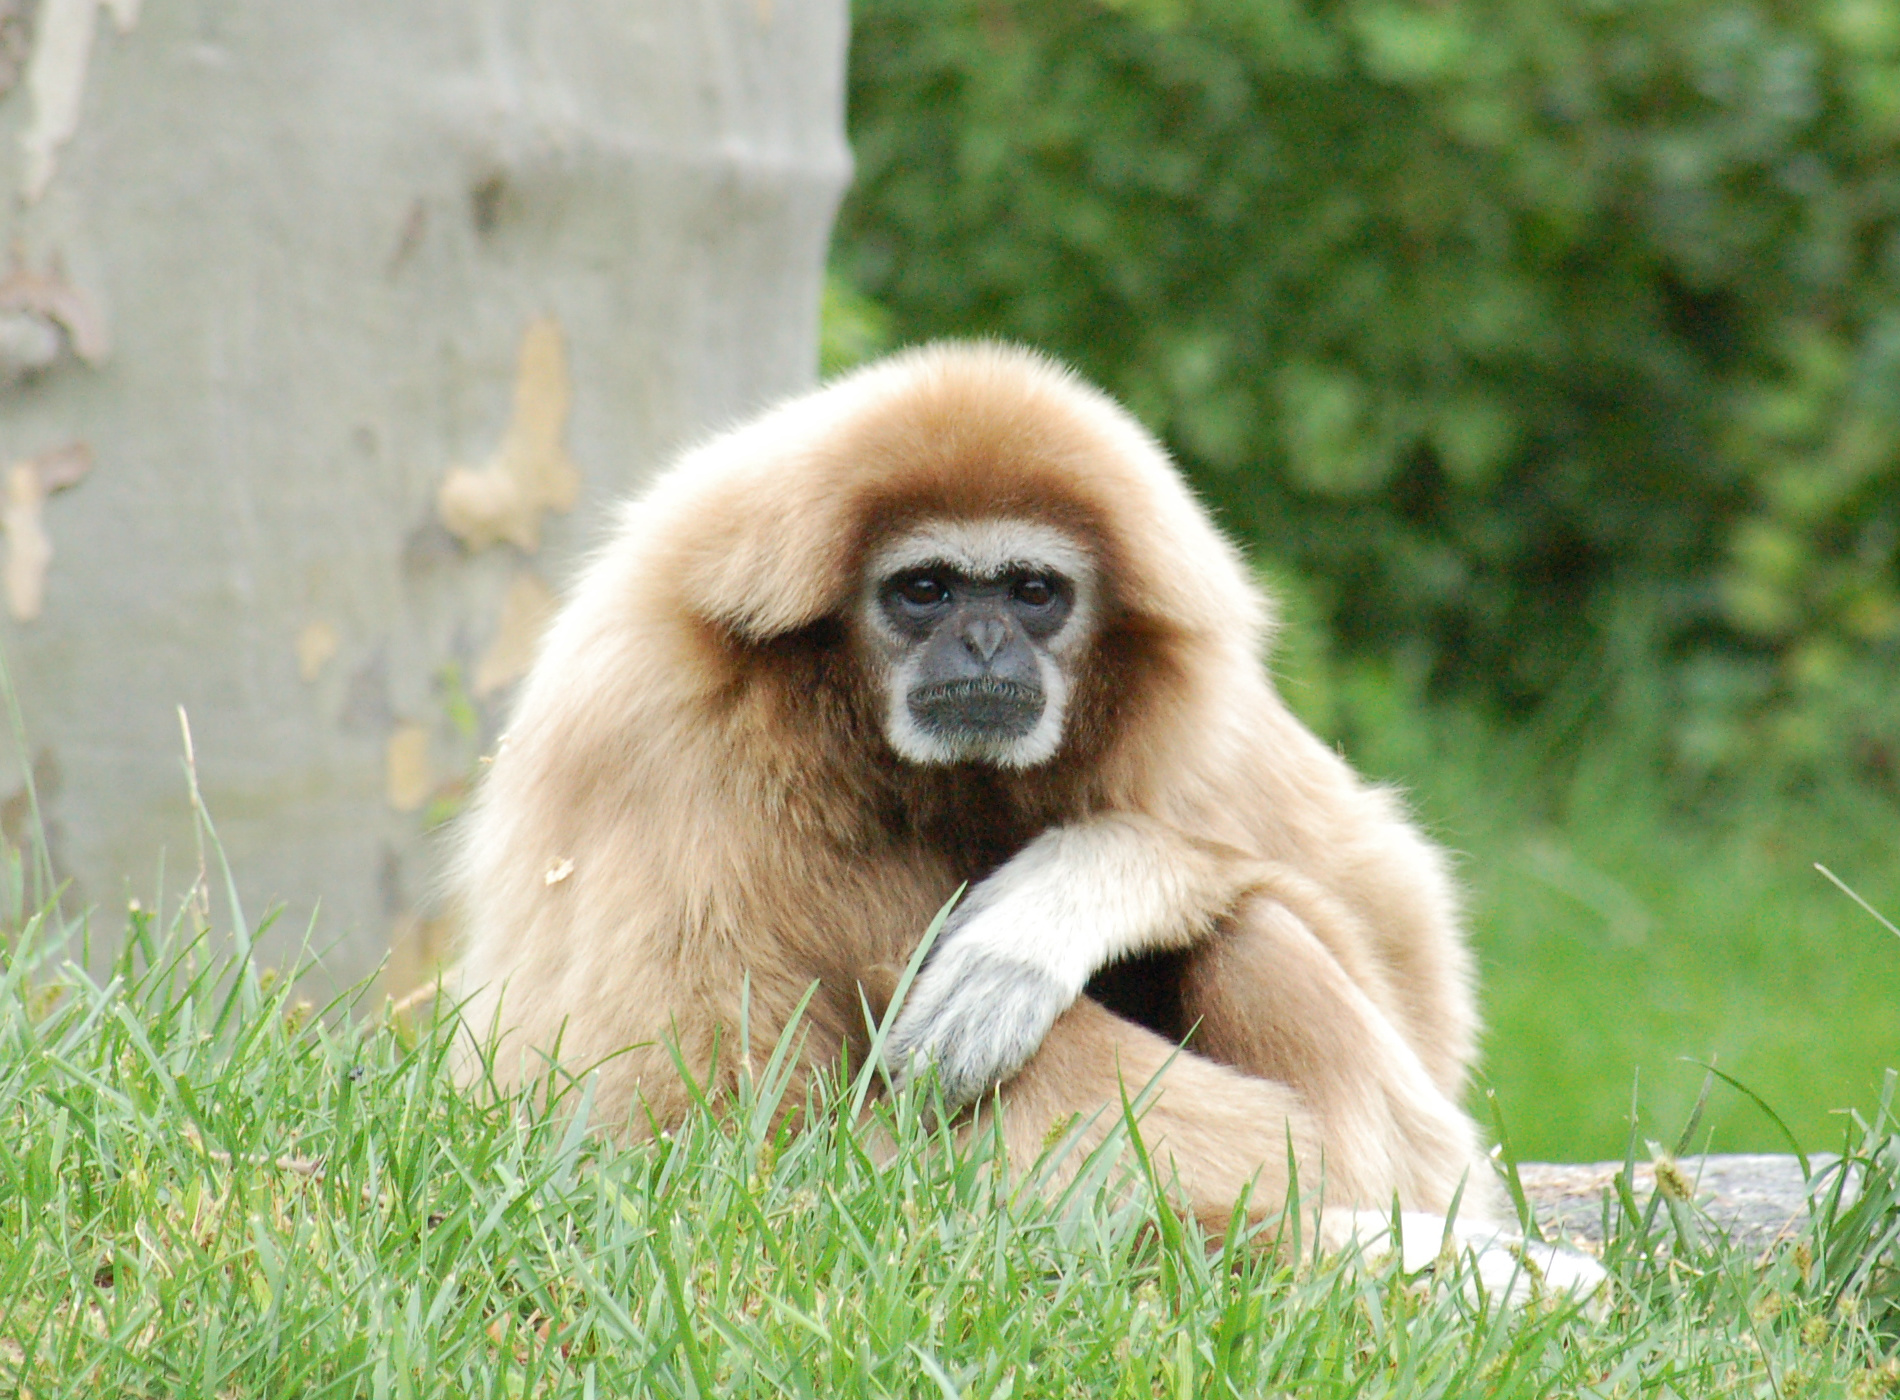 https://upload.wikimedia.org/wikipedia/commons/a/a0/White-handed_Gibbon_Hylobates_lar_Orange_1900px.jpg